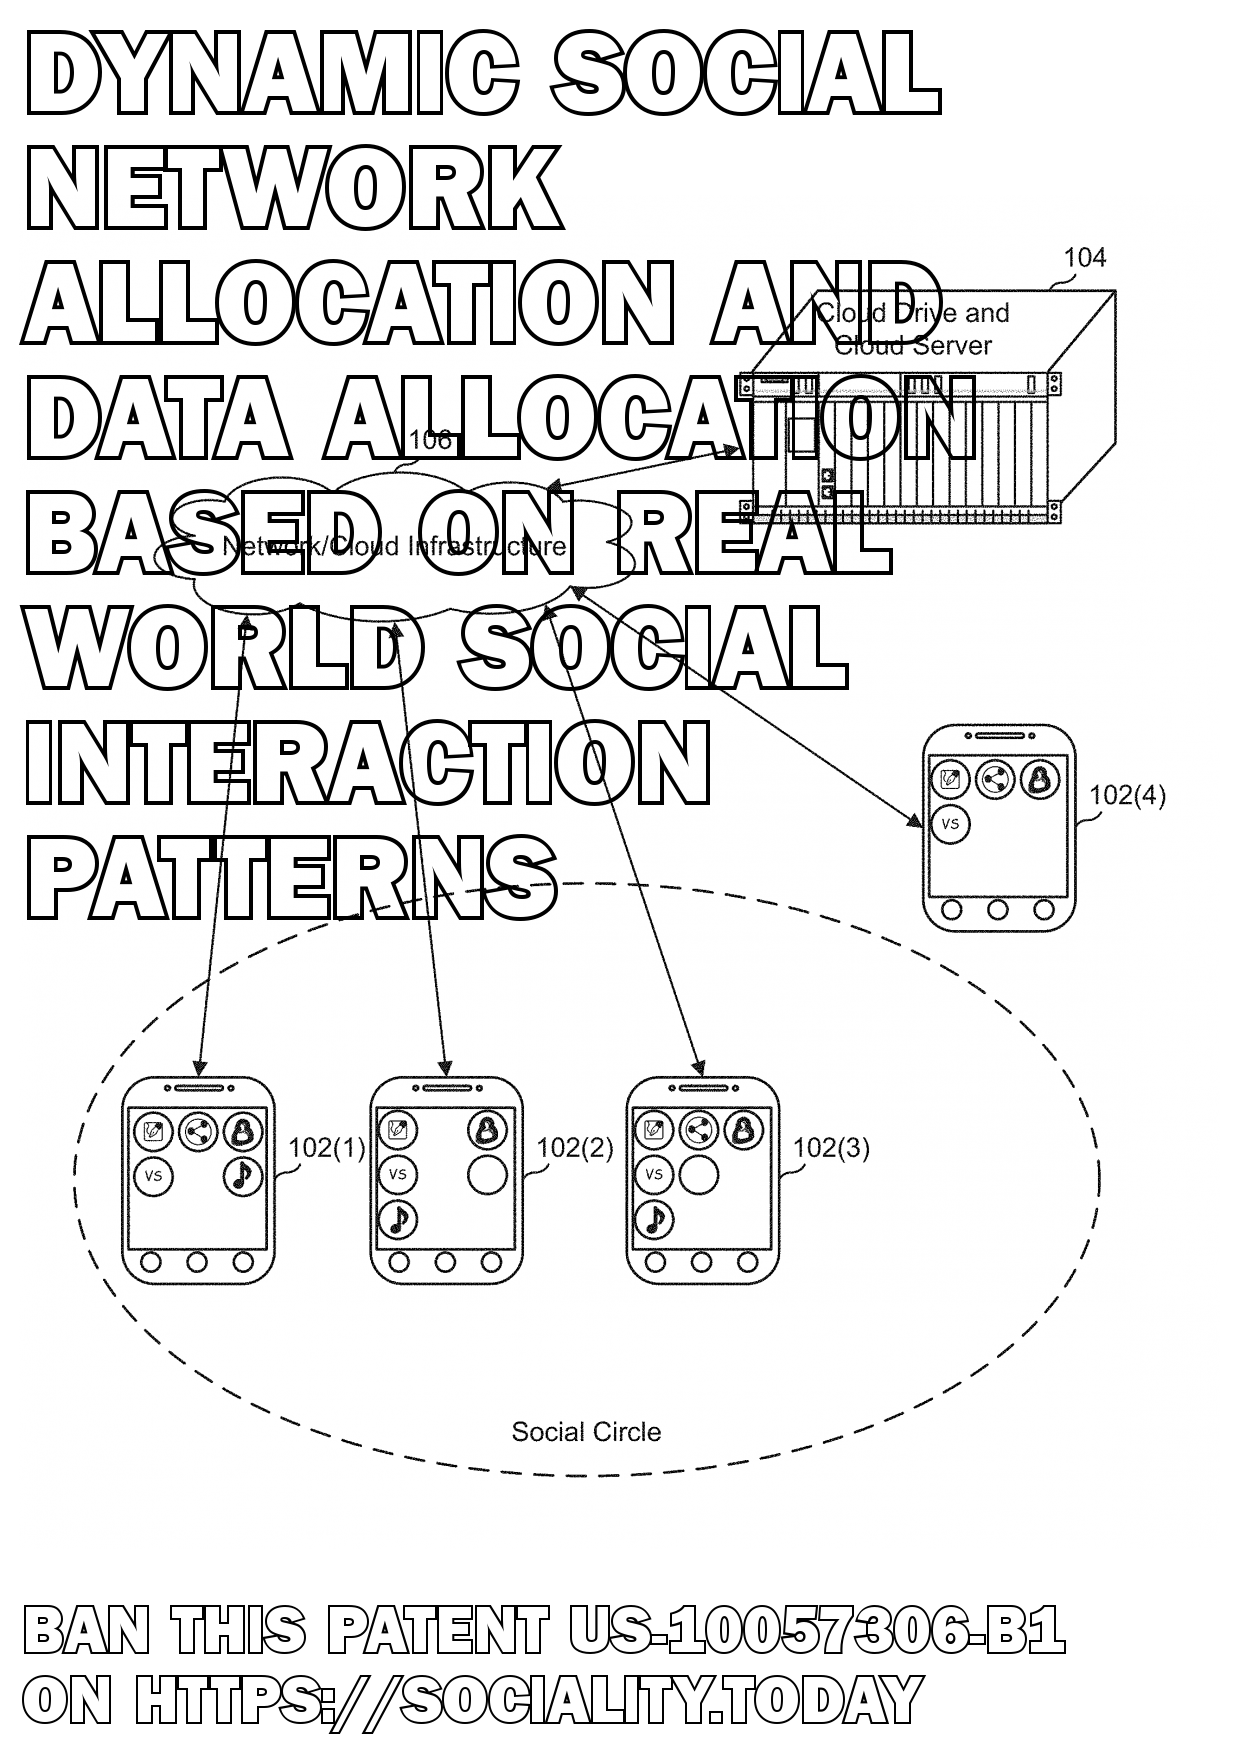 Dynamic social network allocation and data allocation based on real world social interaction patterns  - US-10057306-B1